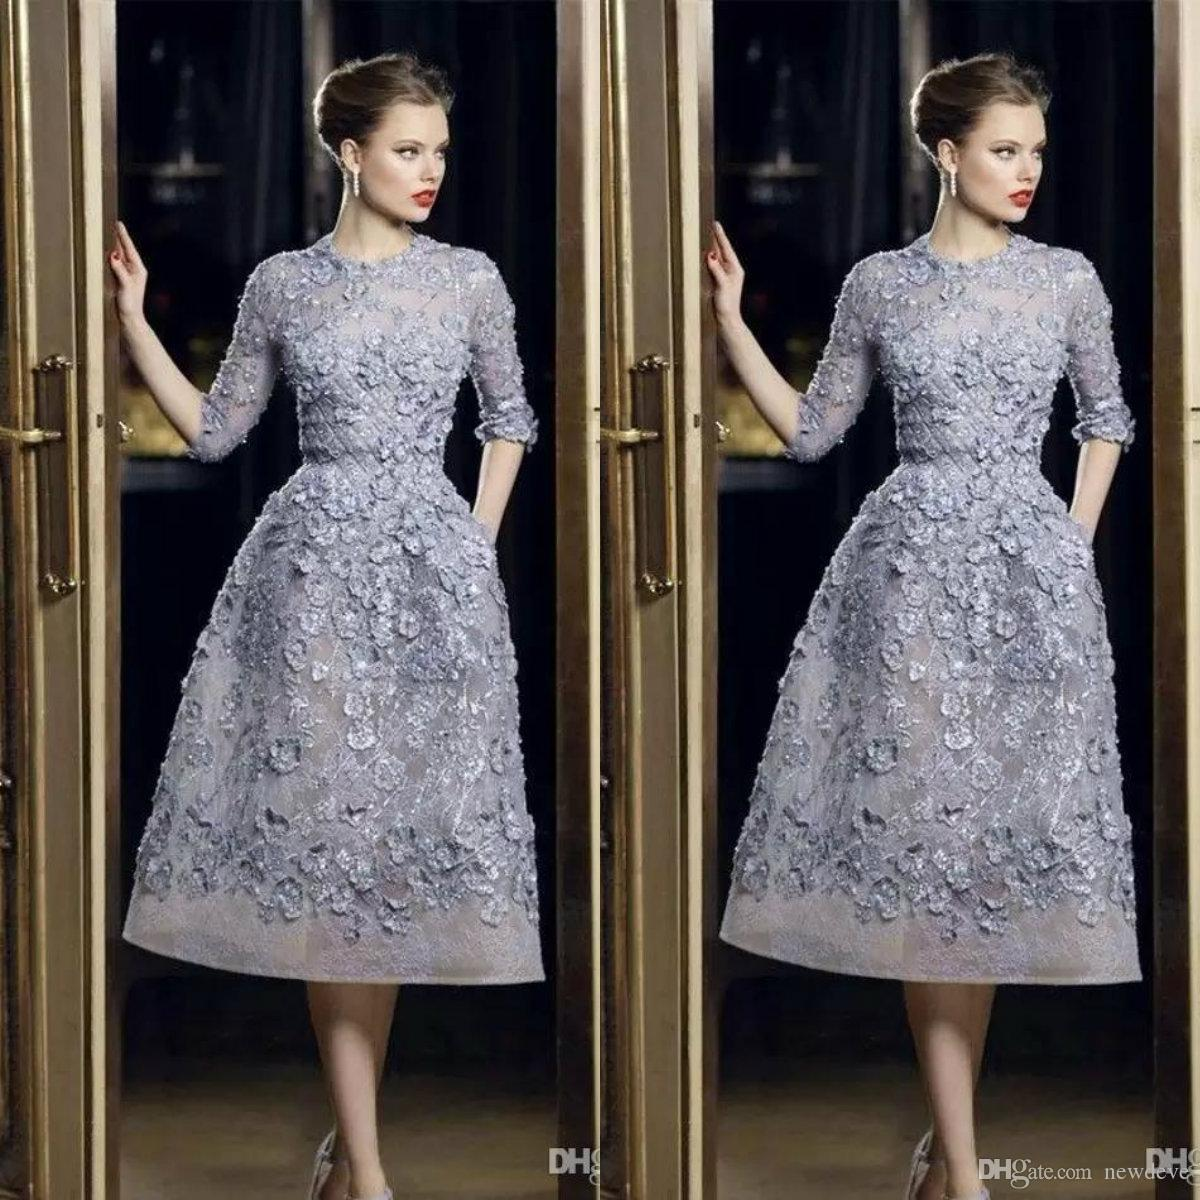 Elie Saab Evening Dresses Elegant Lace Applique A-Line Prom Gowns 3/4 Long Sleeve Tea Length Sexy Formal Party Celebrity Dress Customized